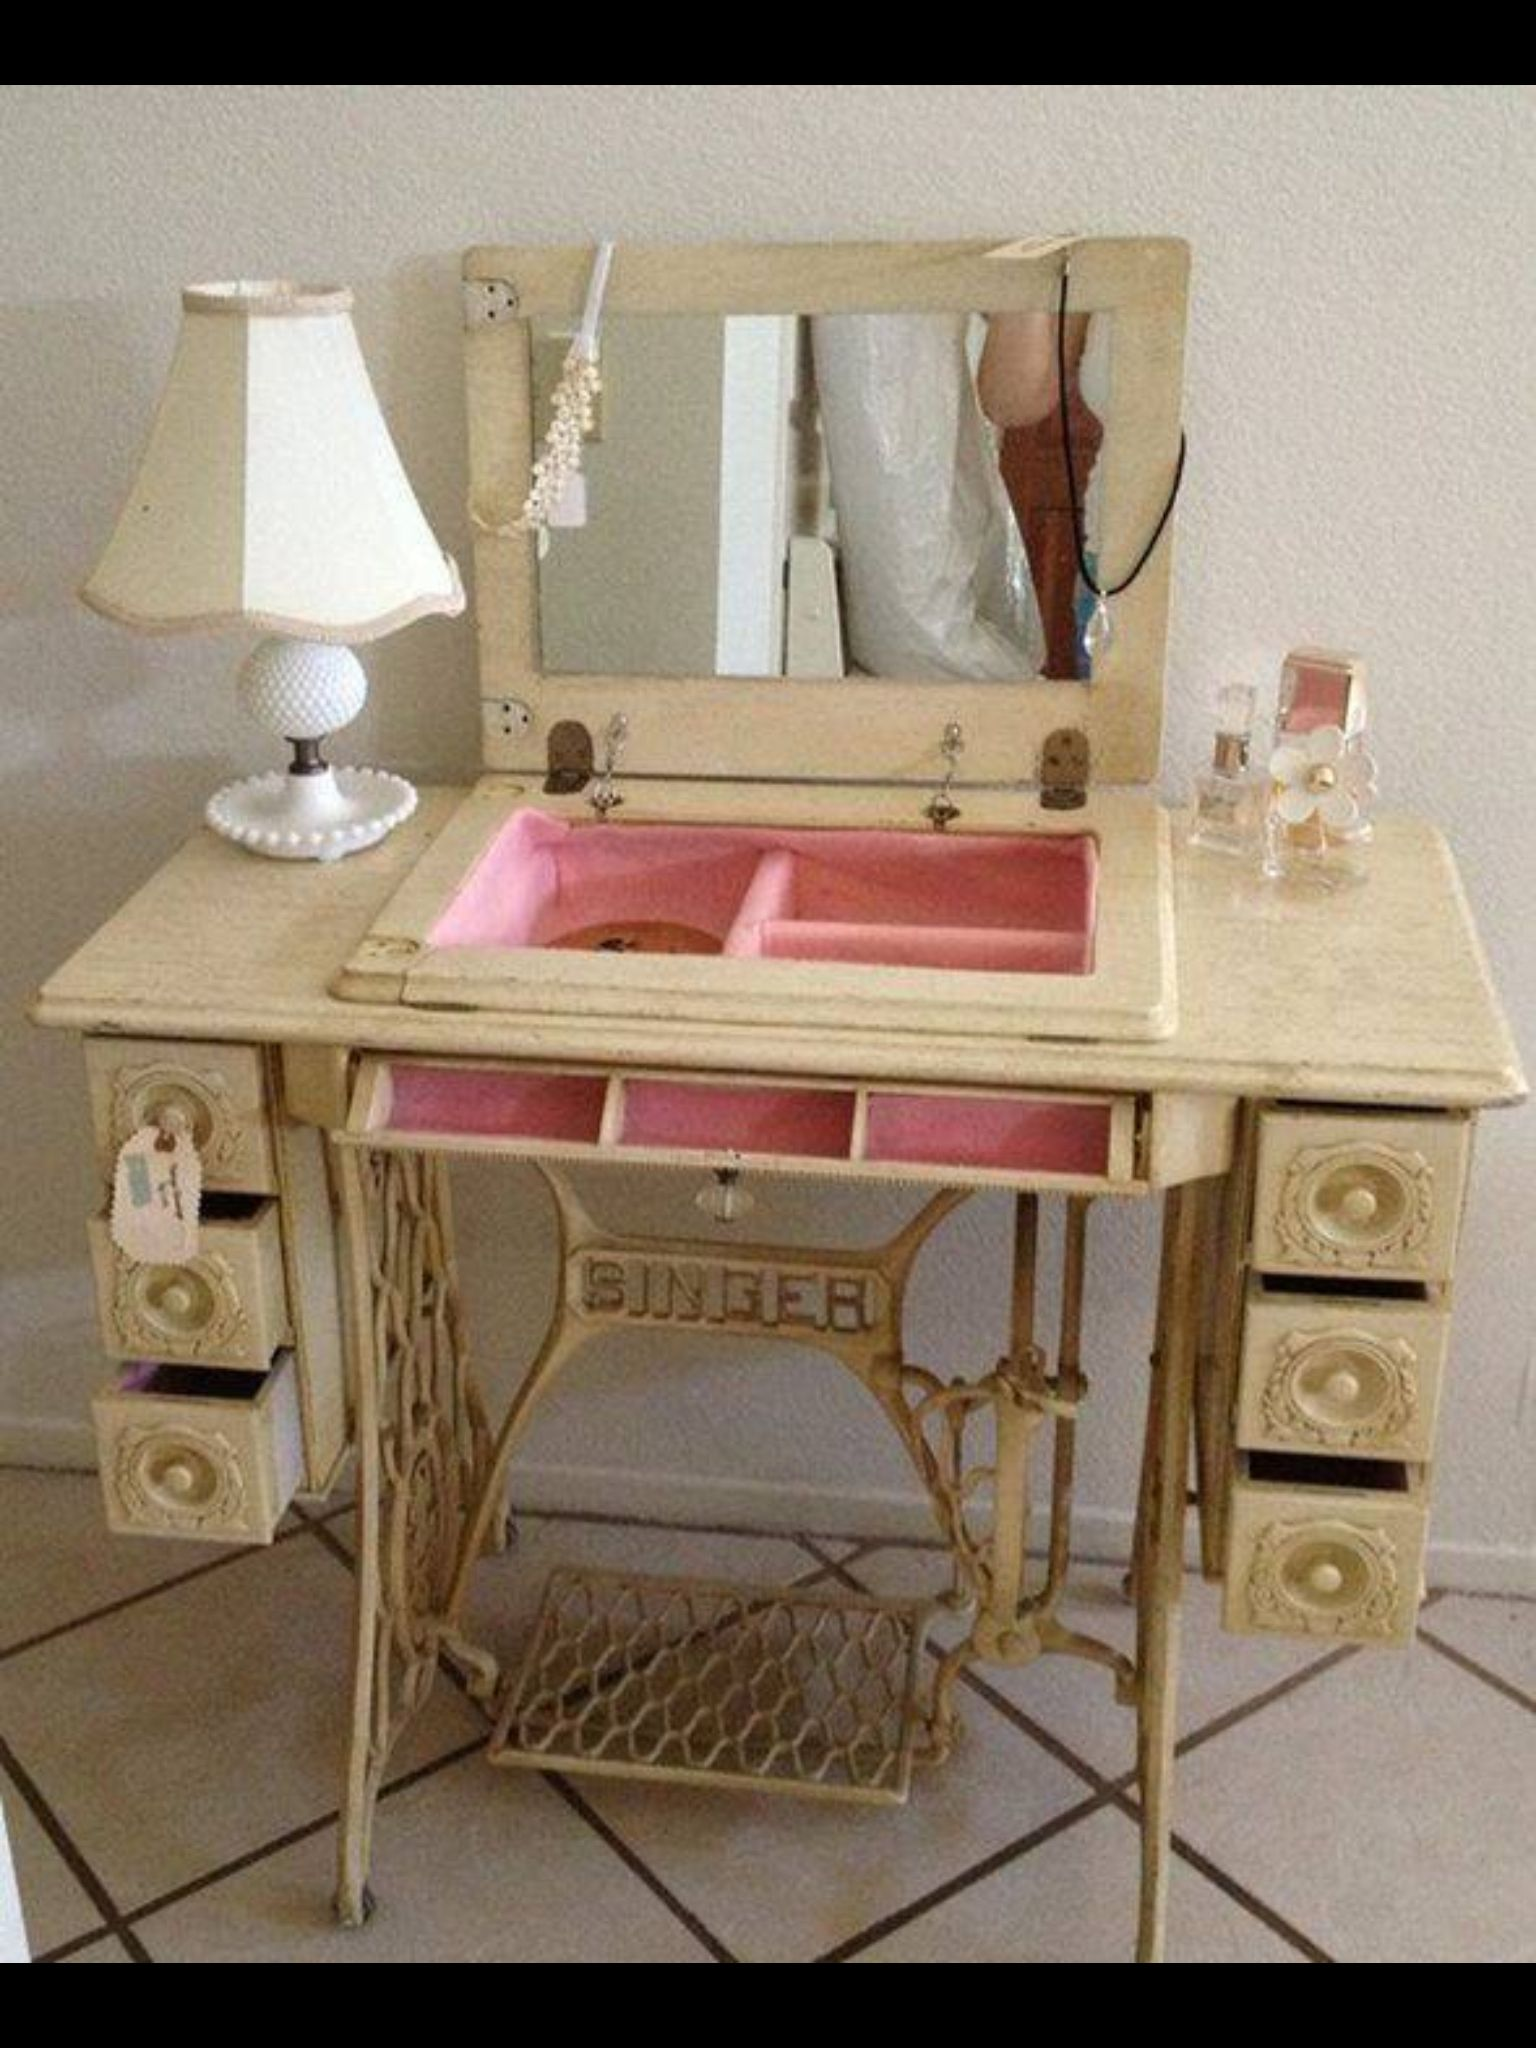 Sewing cabinet makes a cute vanity table